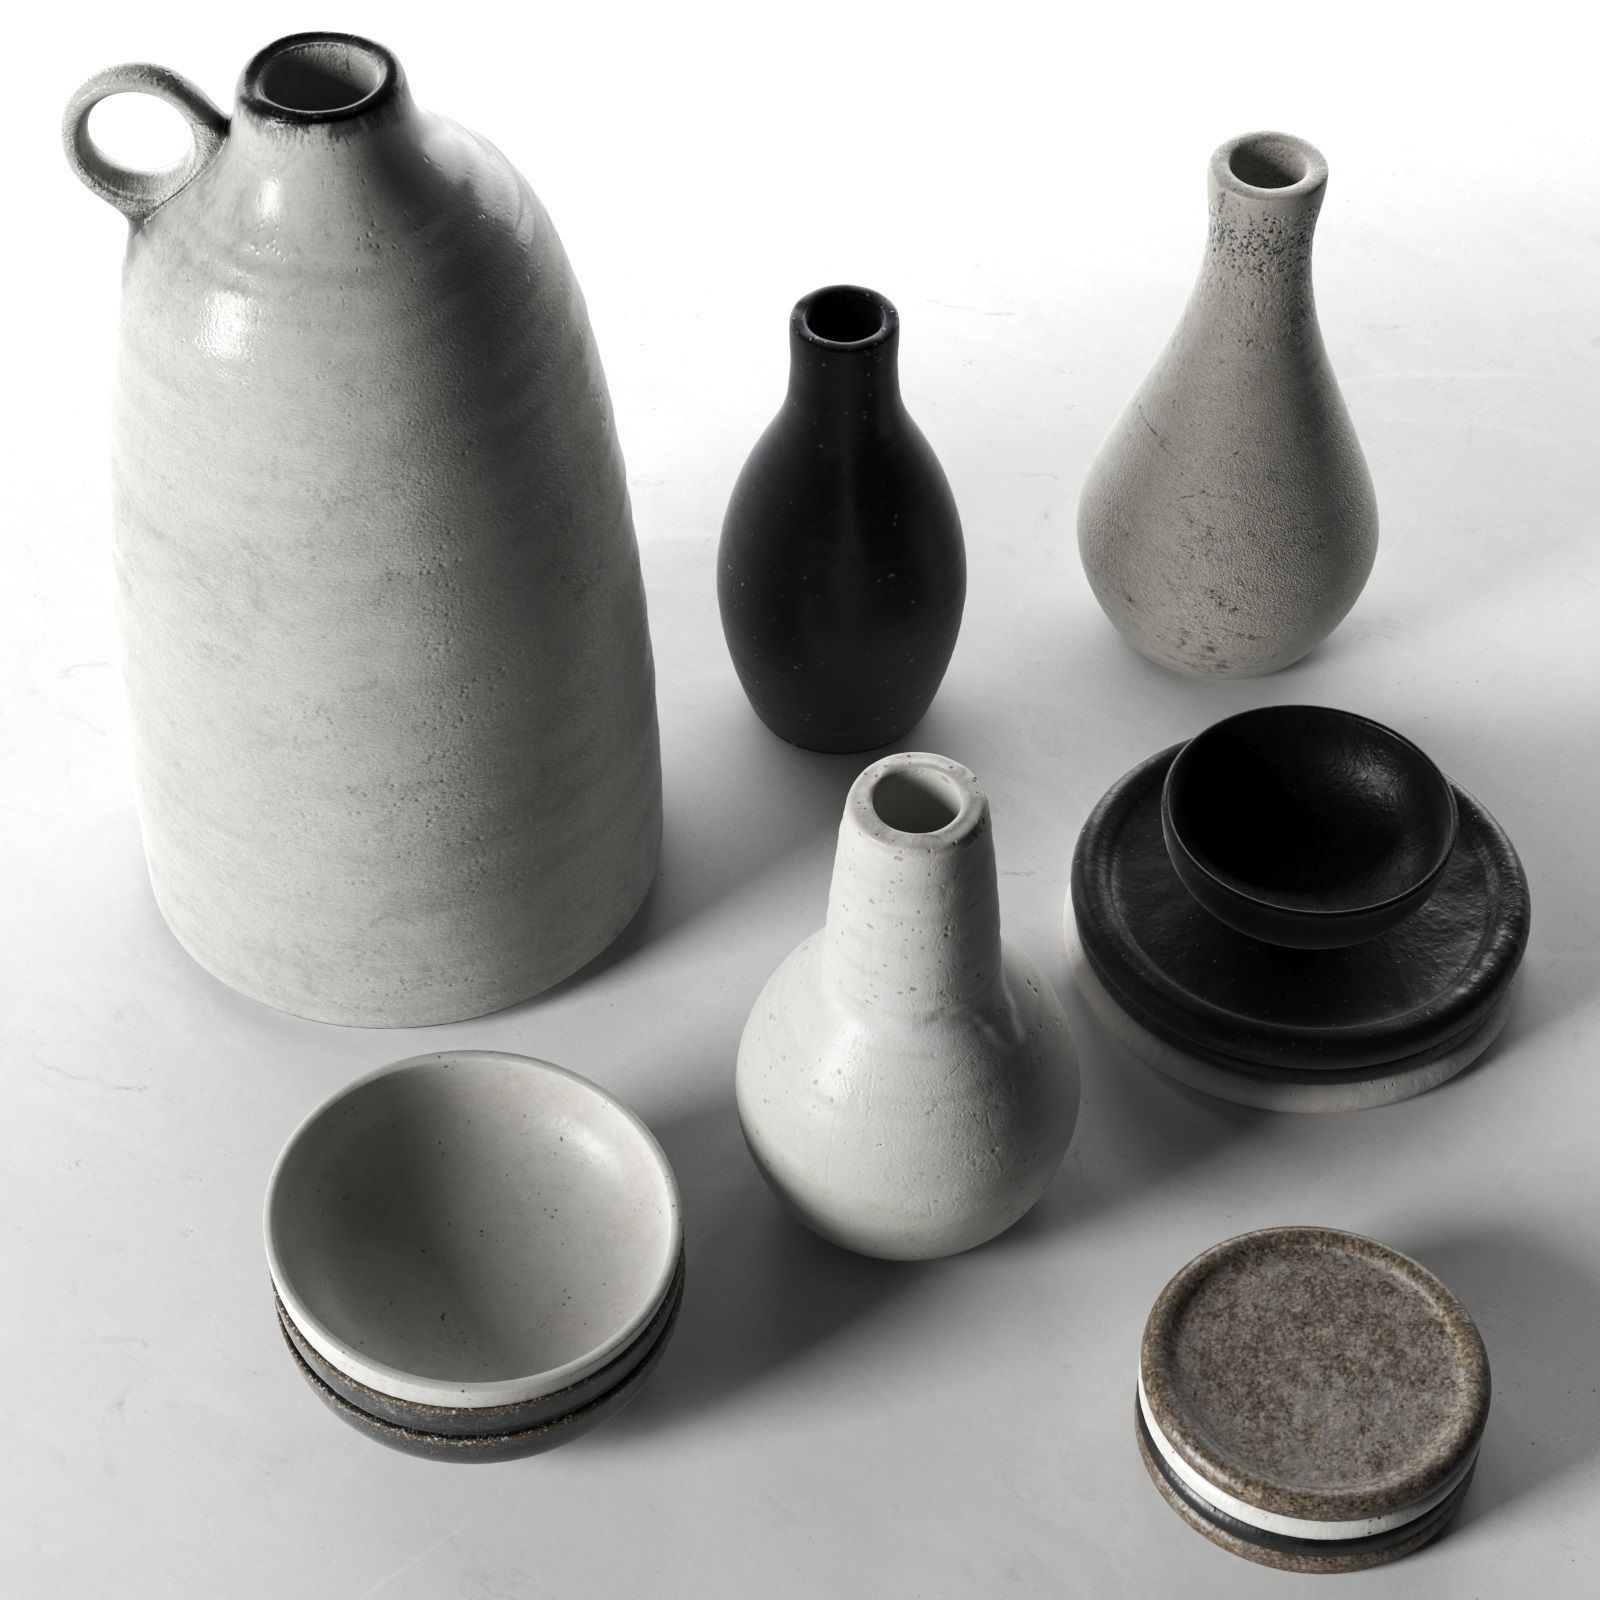 Vases Bowls and Plates